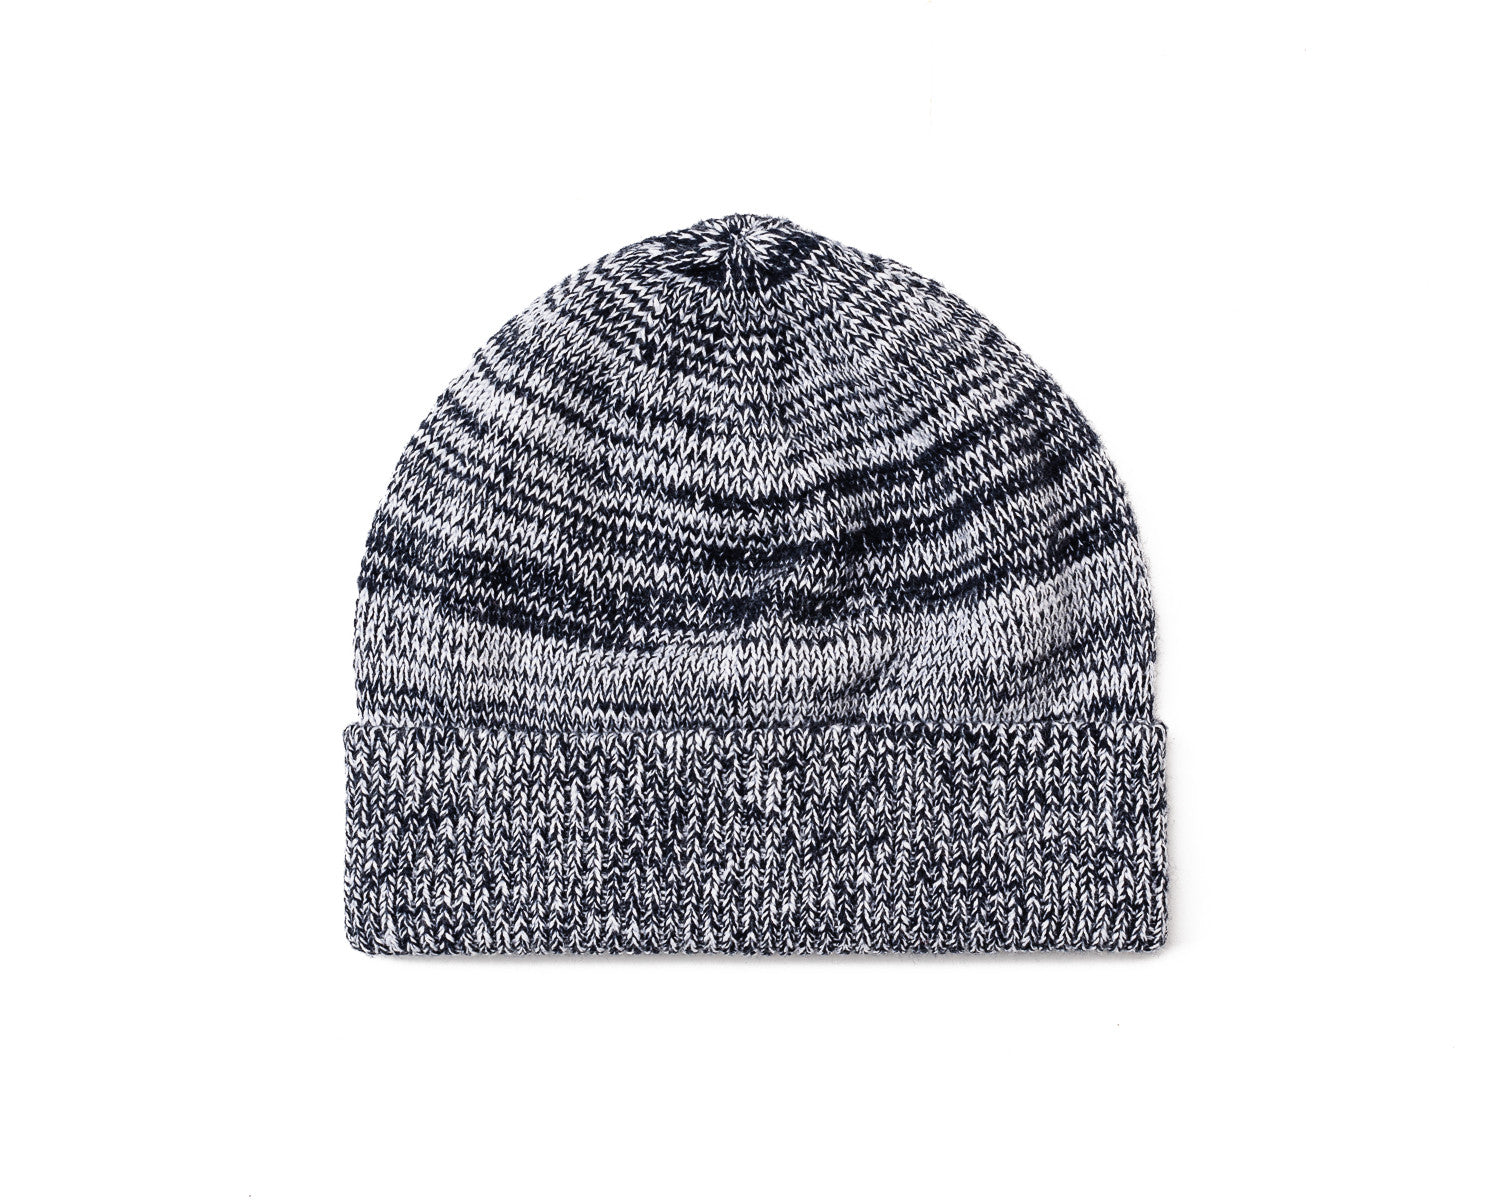 HAT - MULTI GREY